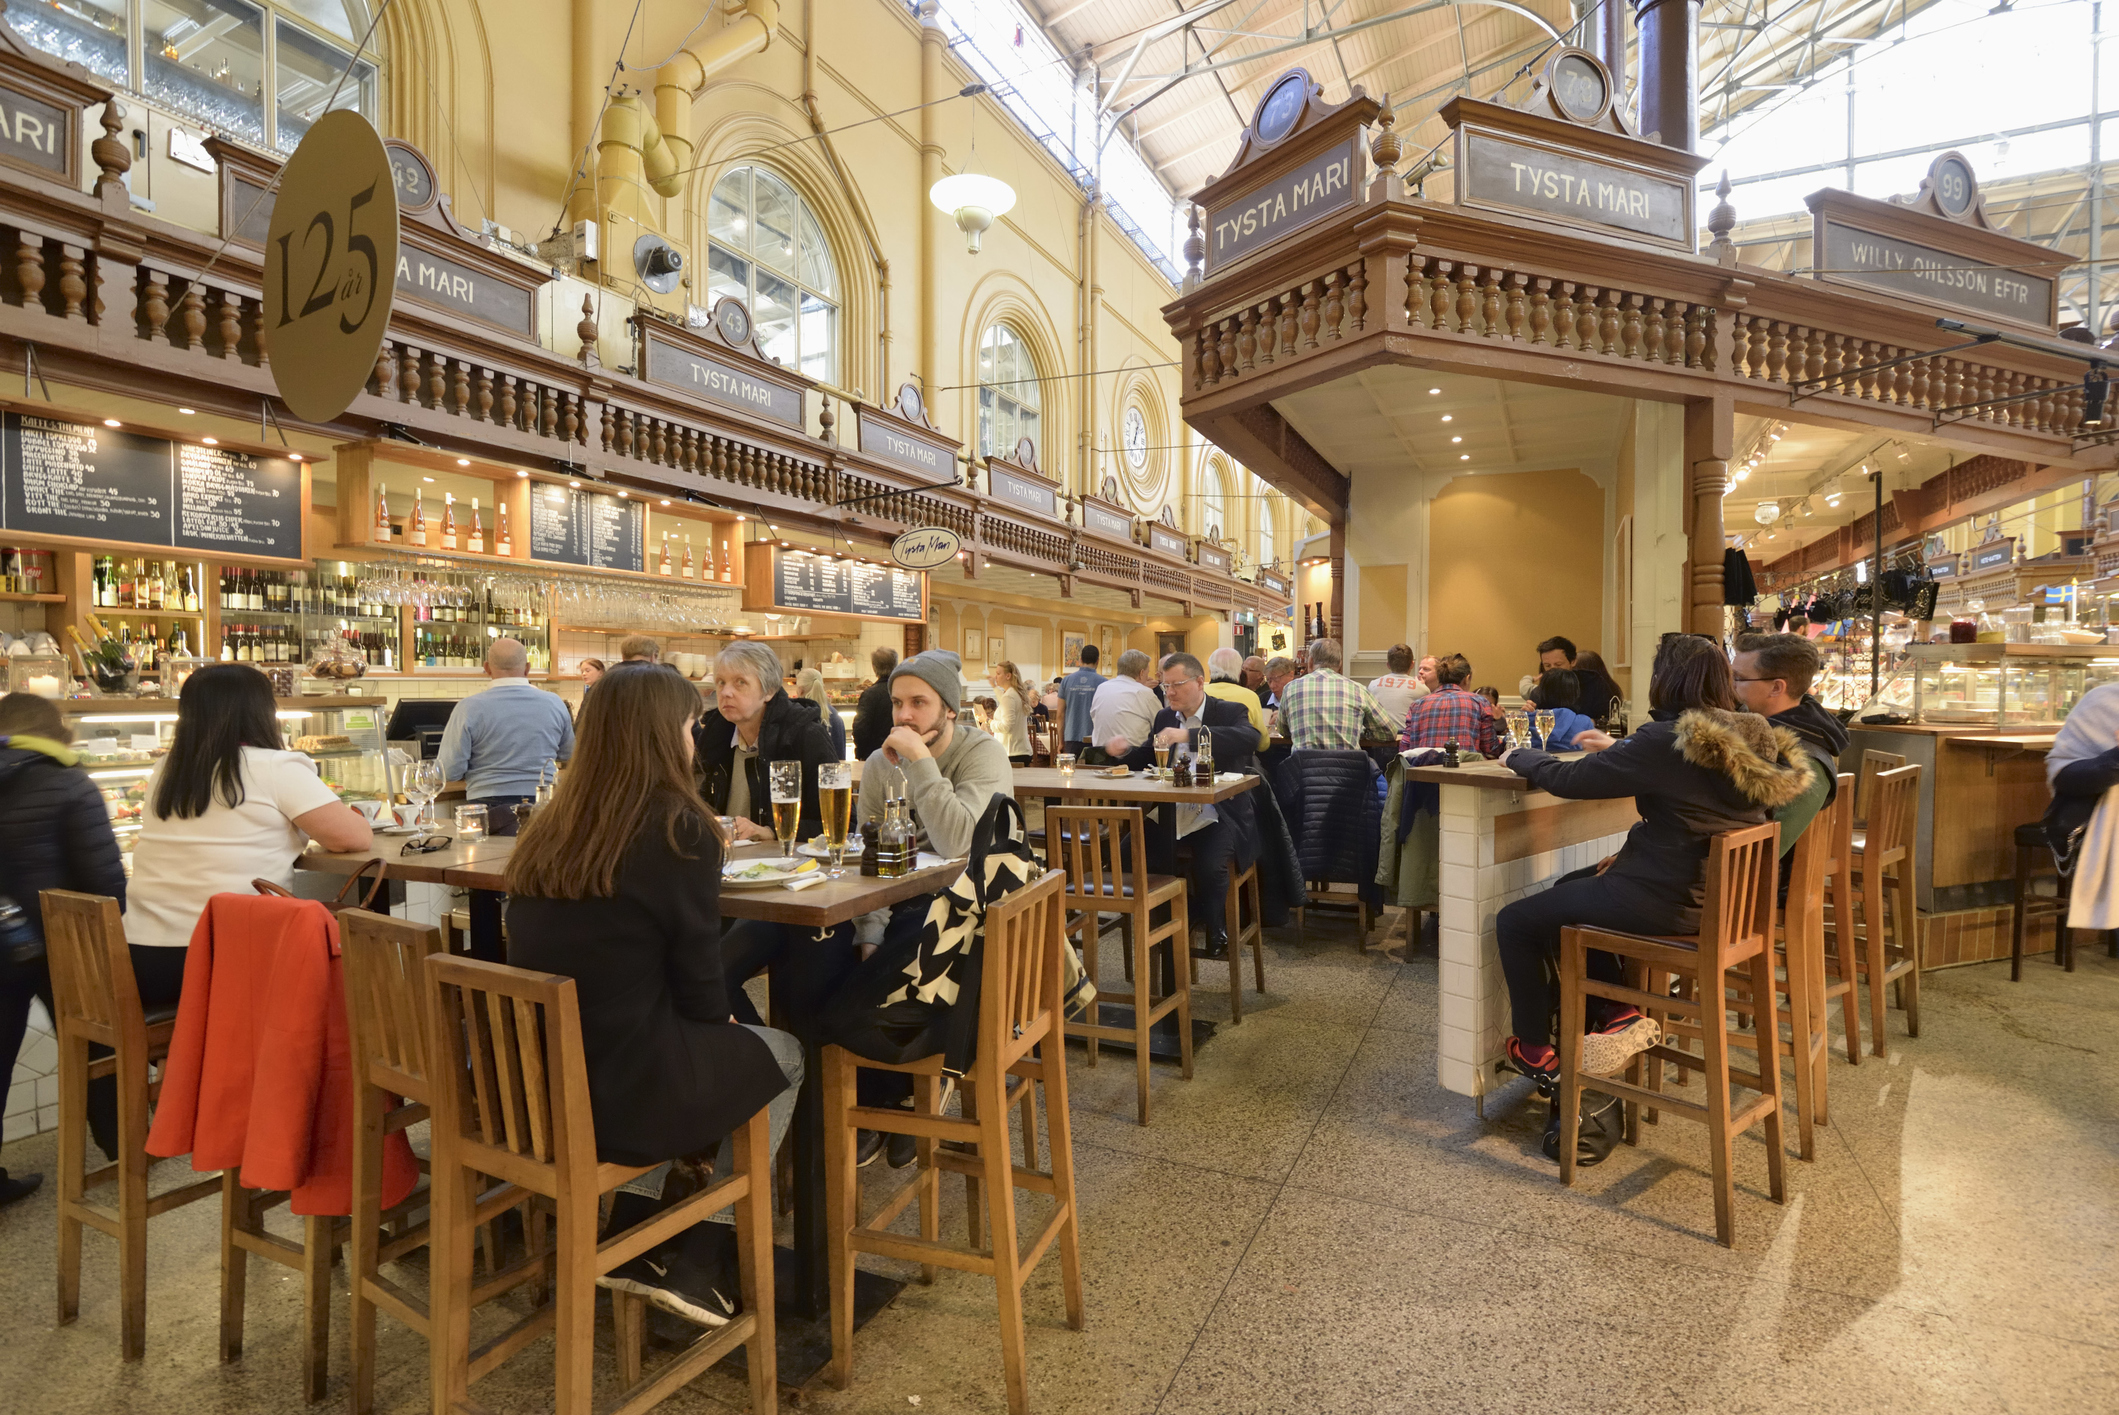 Food market and restaurants at the Ostermalms Saluhall